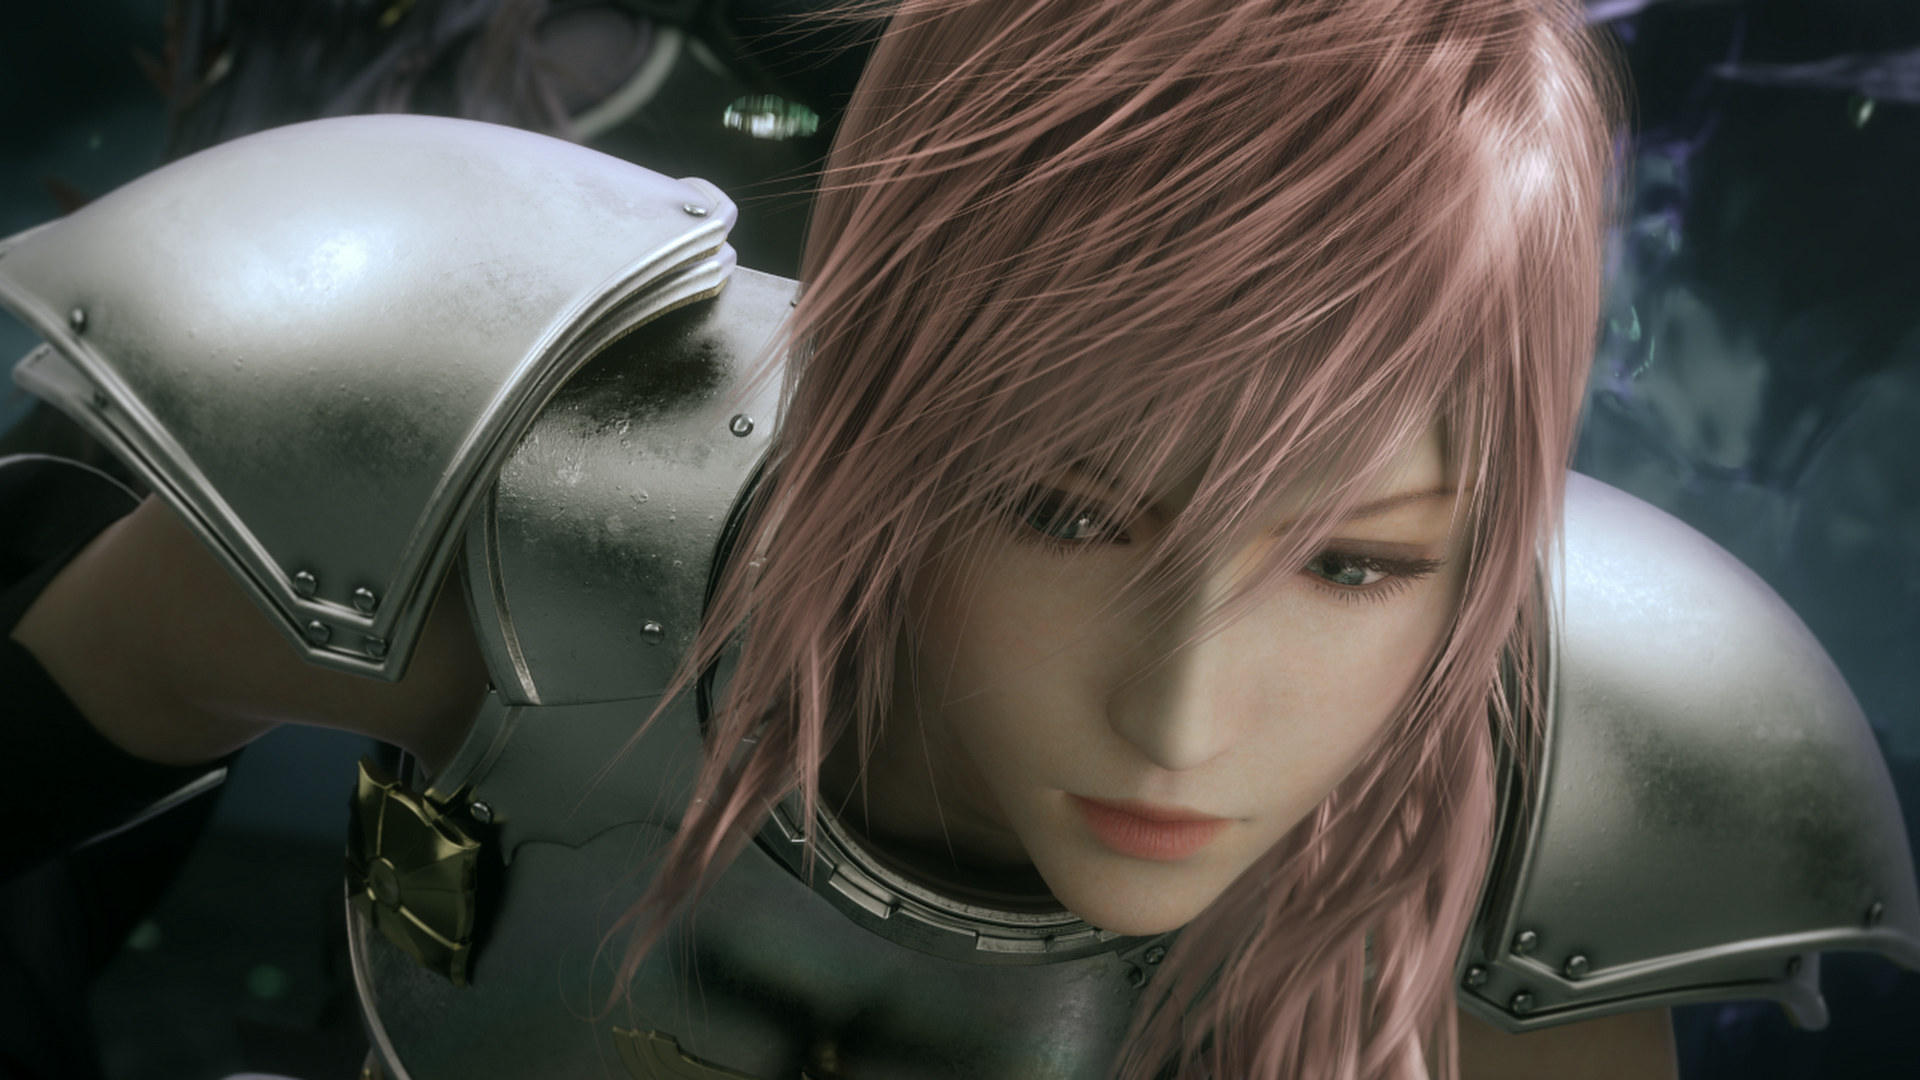 Lightning Final Fantasy 13 Side Boob